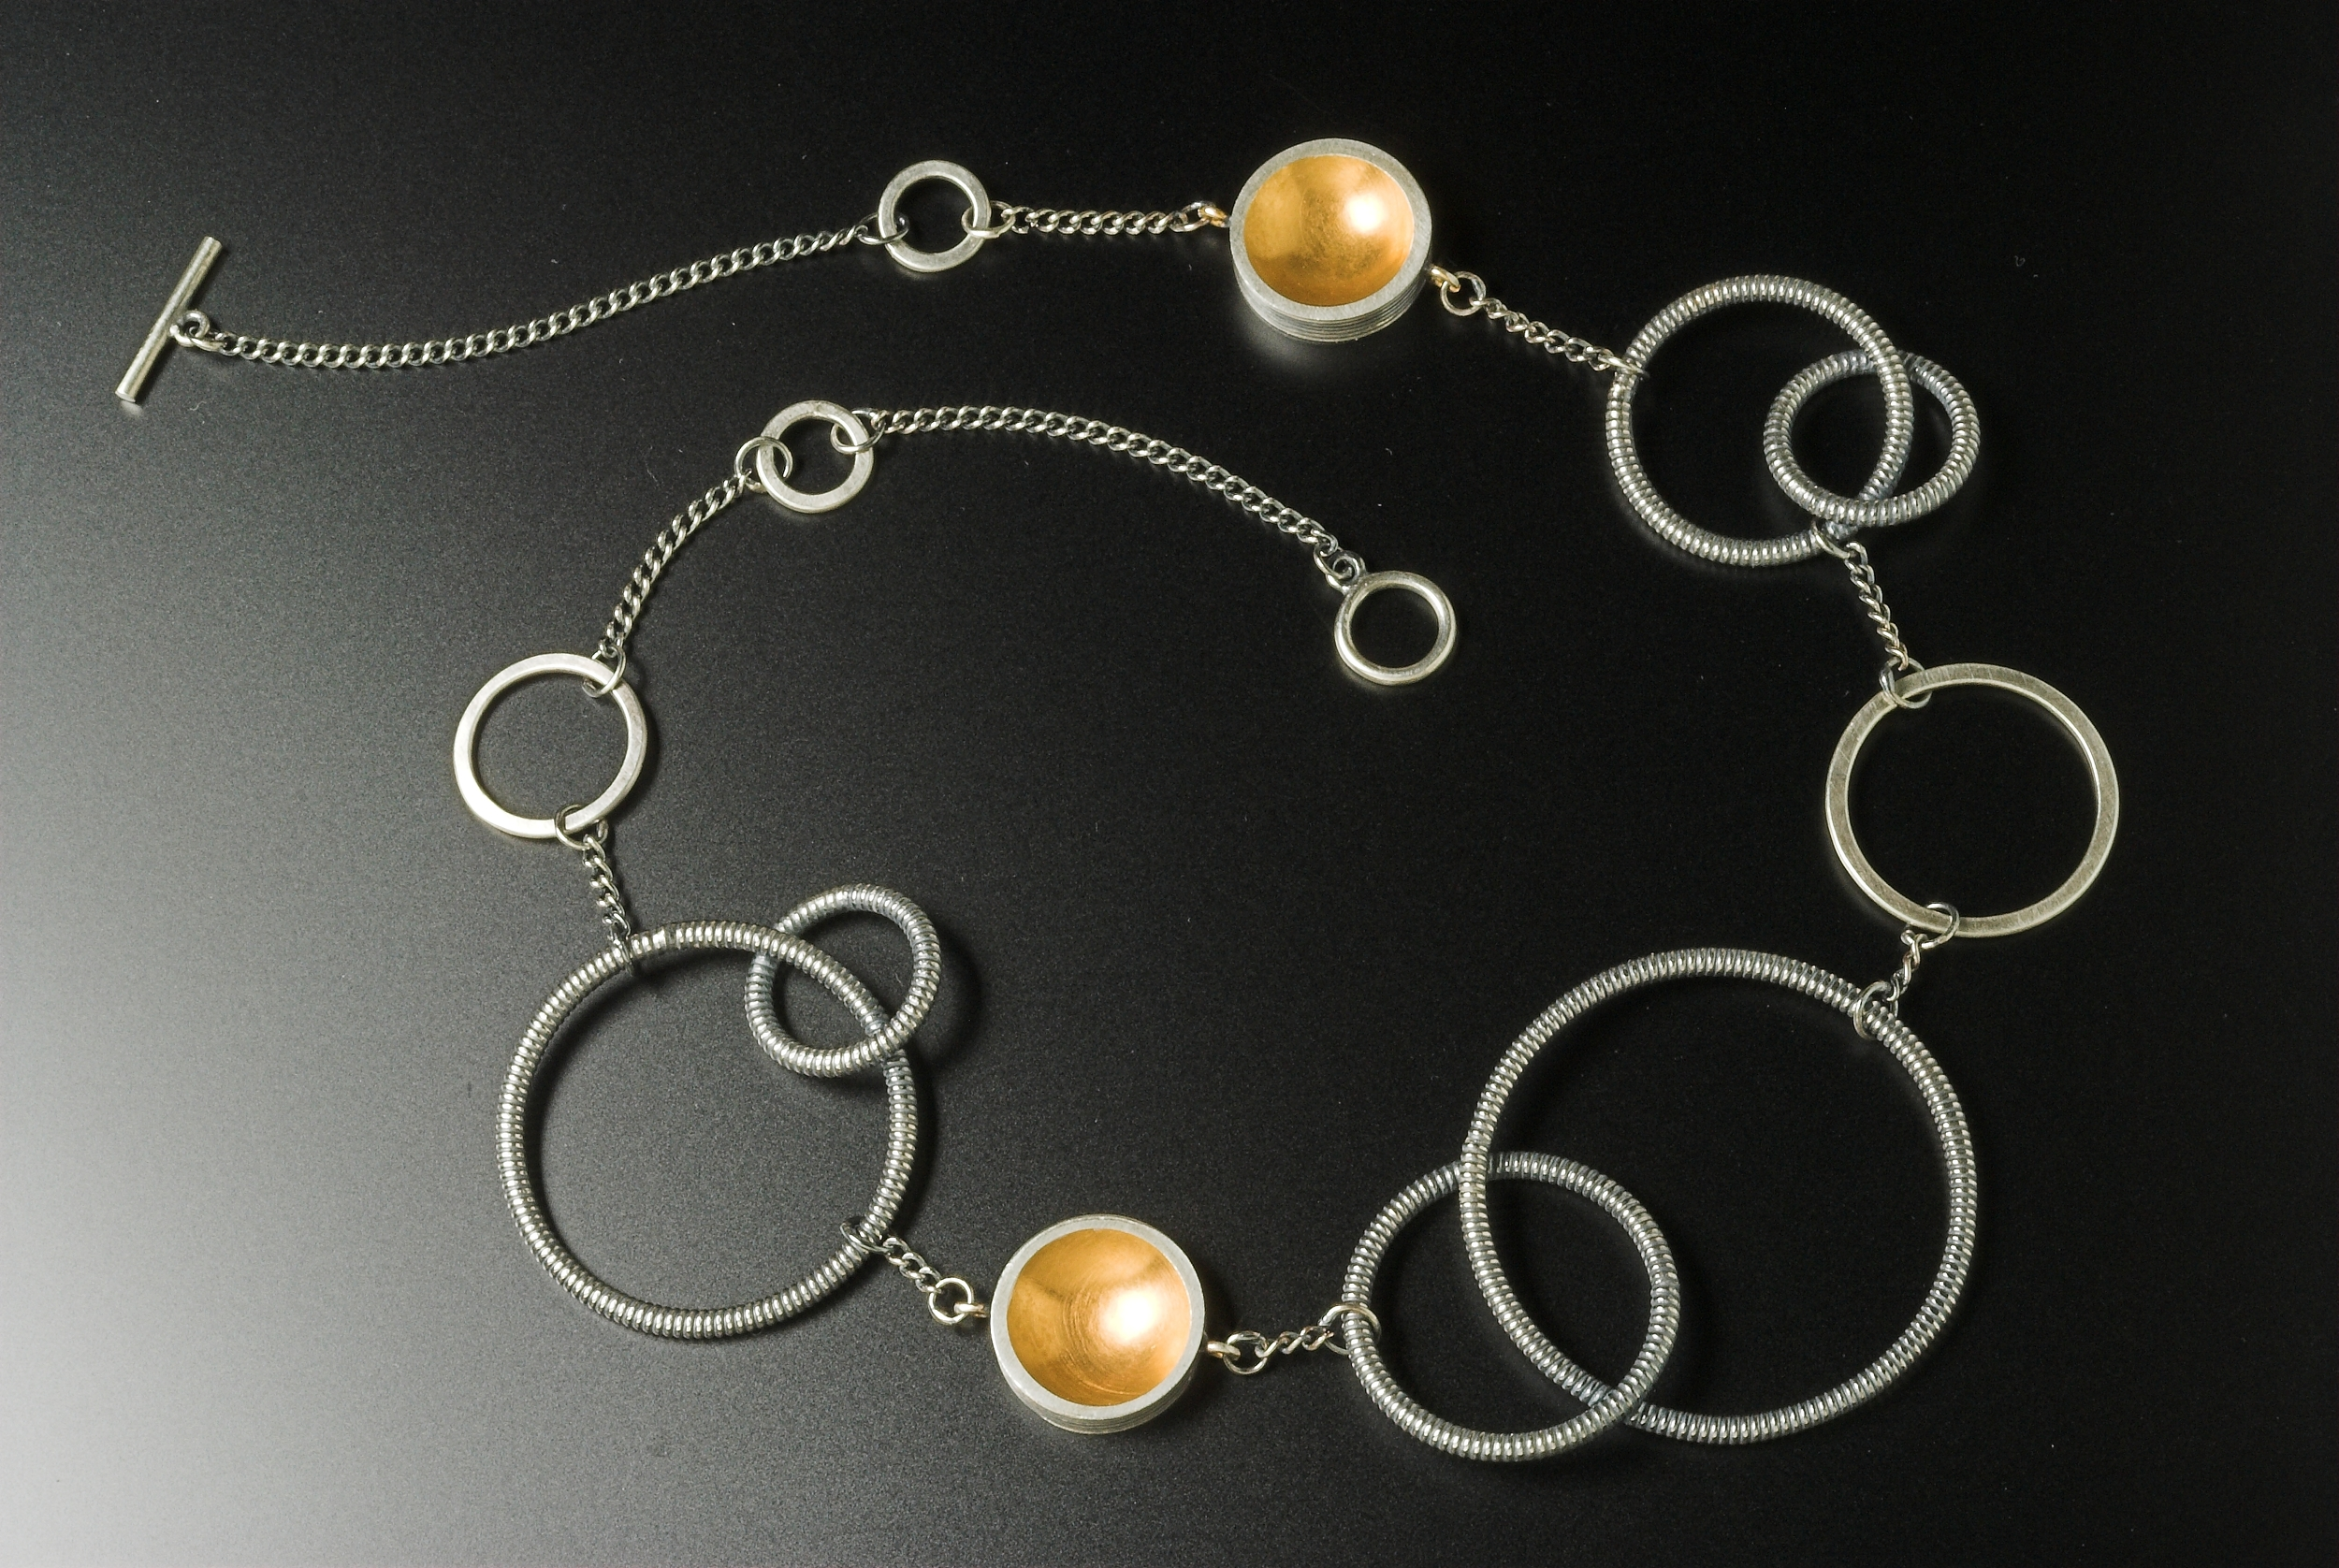 Silver and gold plate loop necklace @ 45cm long £395